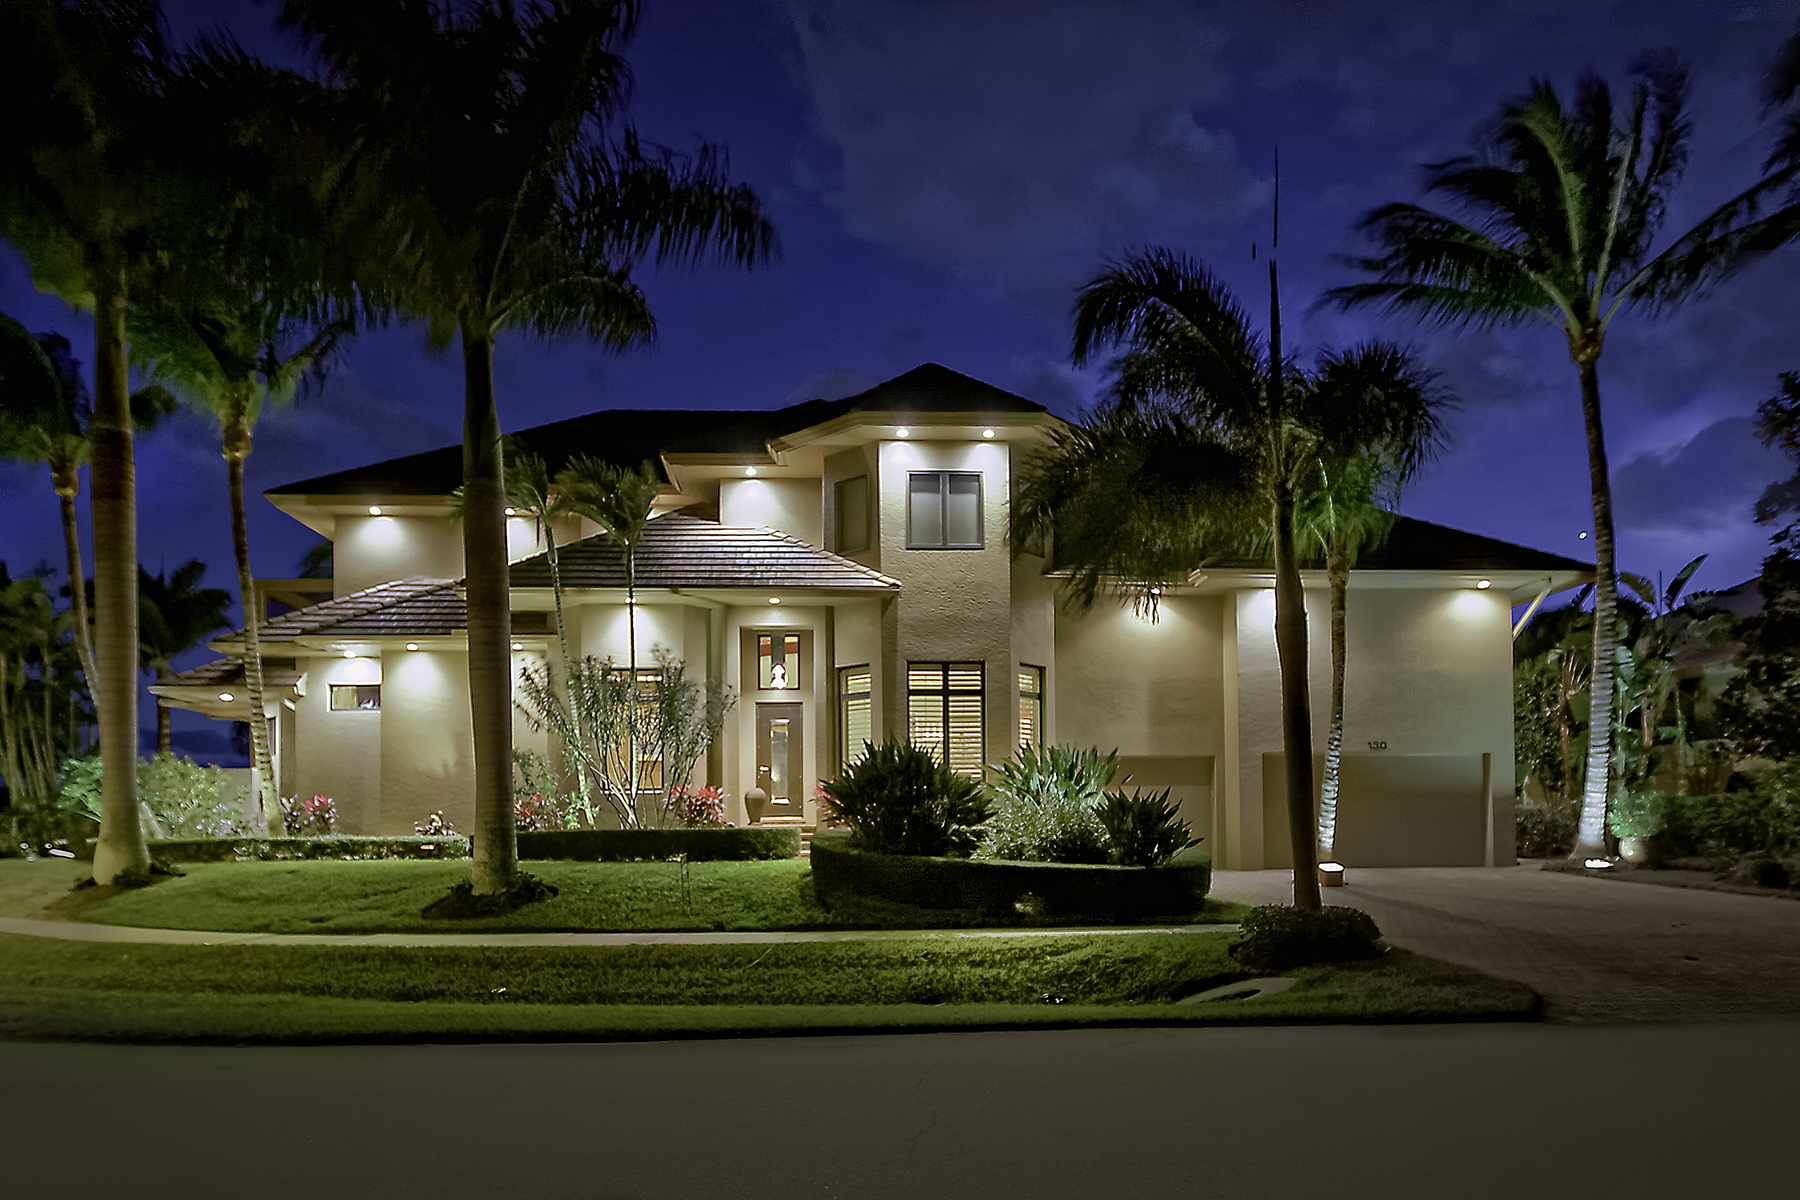 Single Family Home for Sale at MARCO ISLAND - HOLLYHOCK 130 Hollyhock Ct Marco Island, Florida 34145 United States